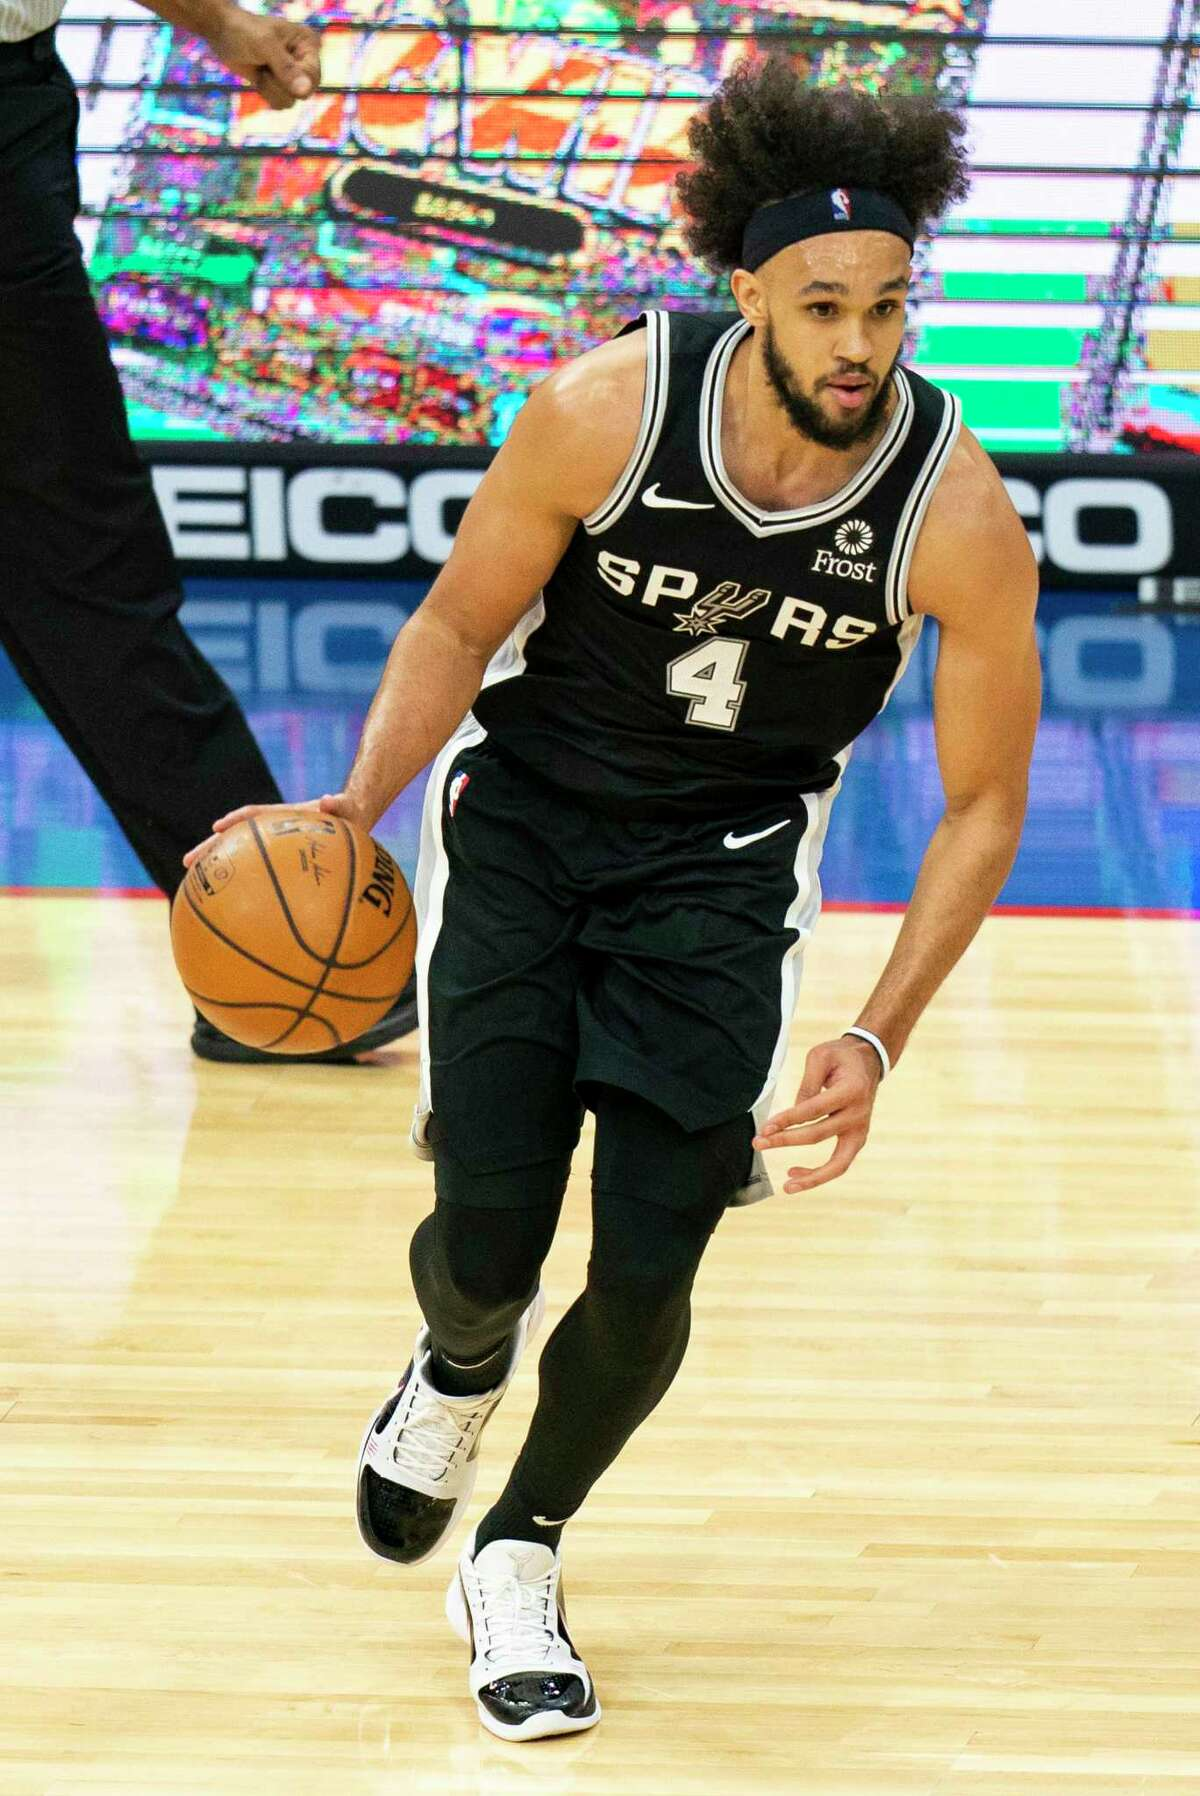 The Spurs' Derrick White dribbles up court during the second half against the 76ers on Sunday, March 14, 2021, in Philadelphia.